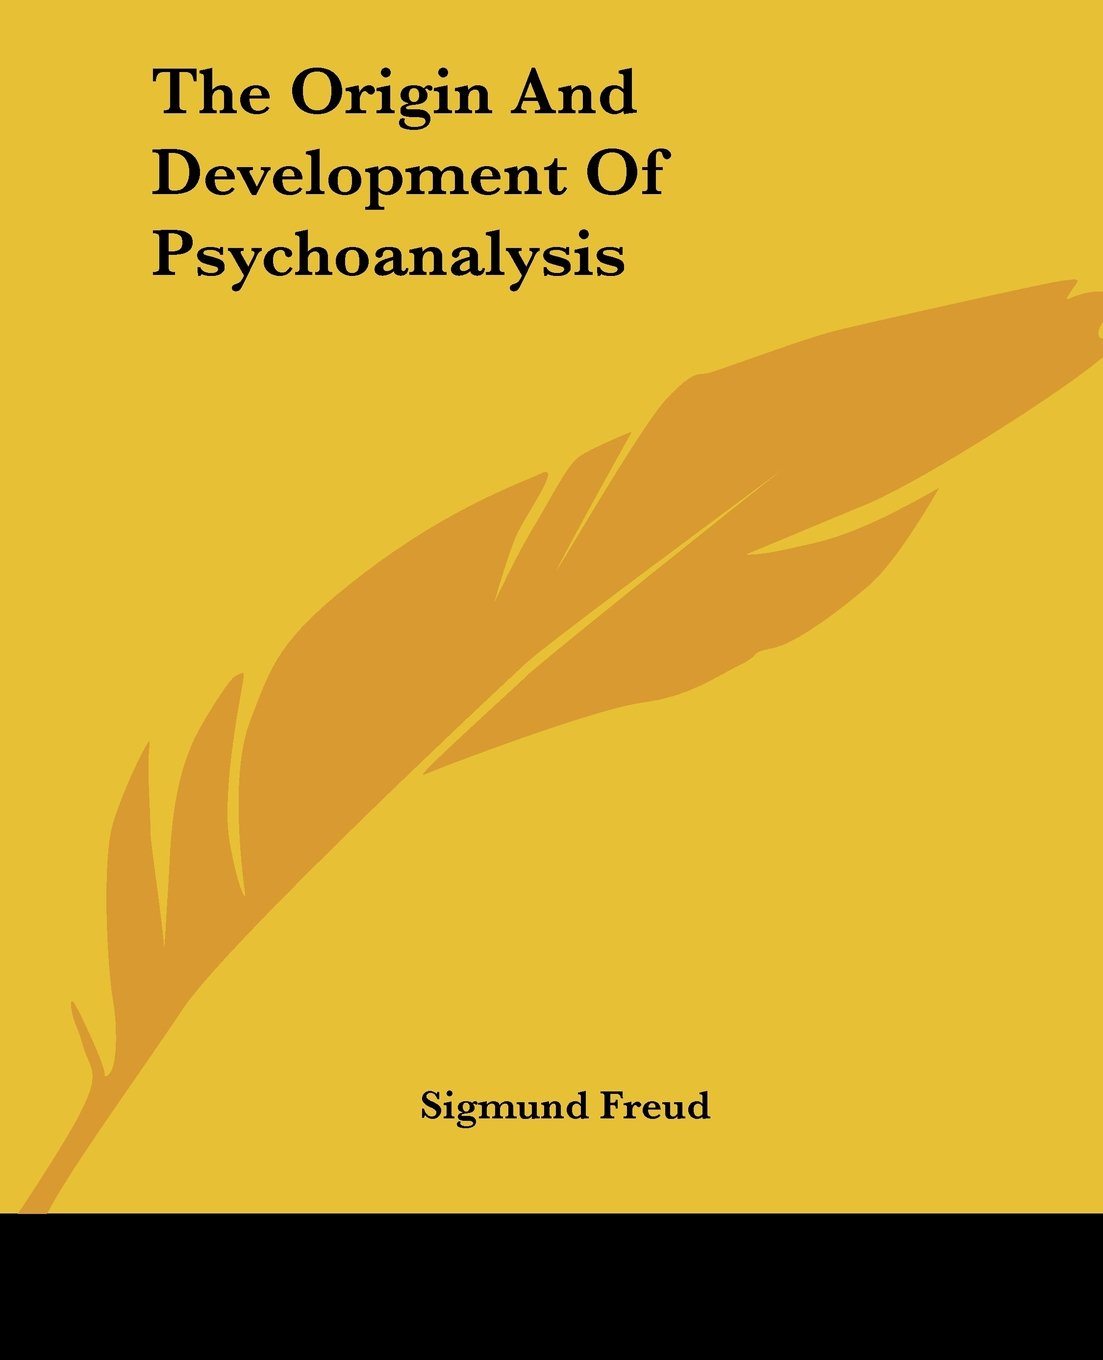 Sigmund Freud - The Origin and Development of Psychoanalysis, Rudolf Allers